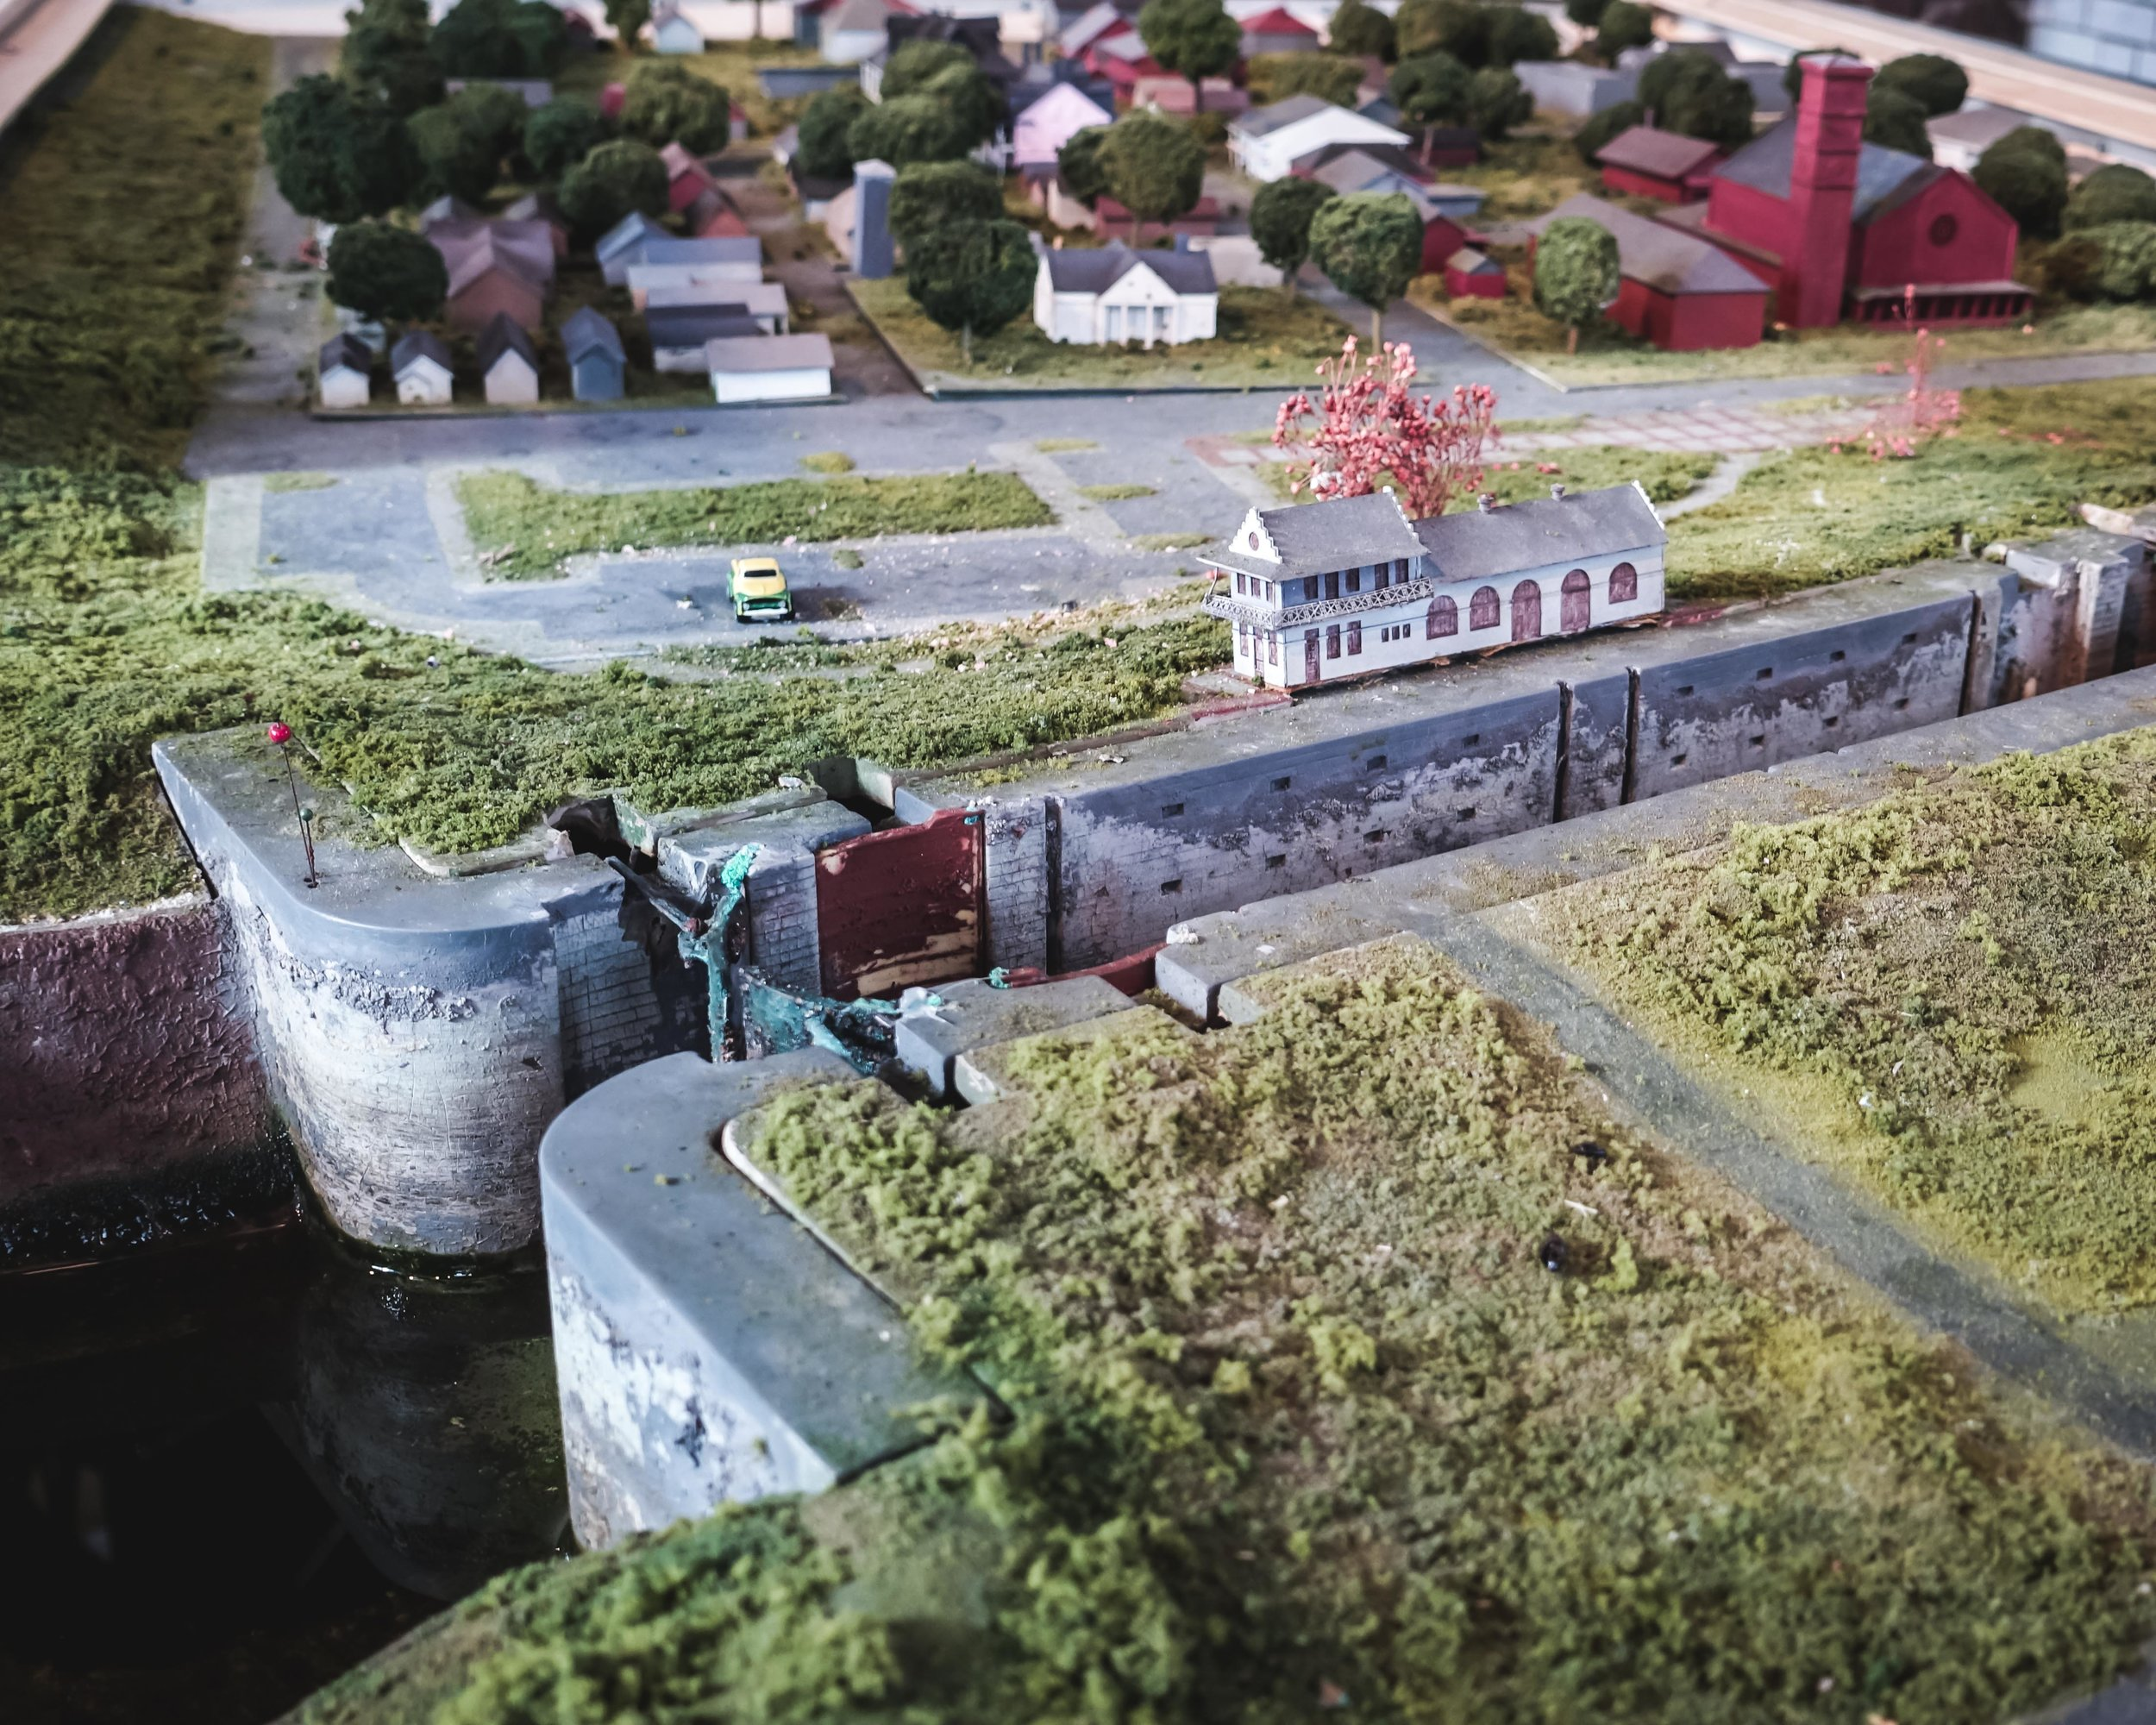 Working Model Of Plaquemine Locks